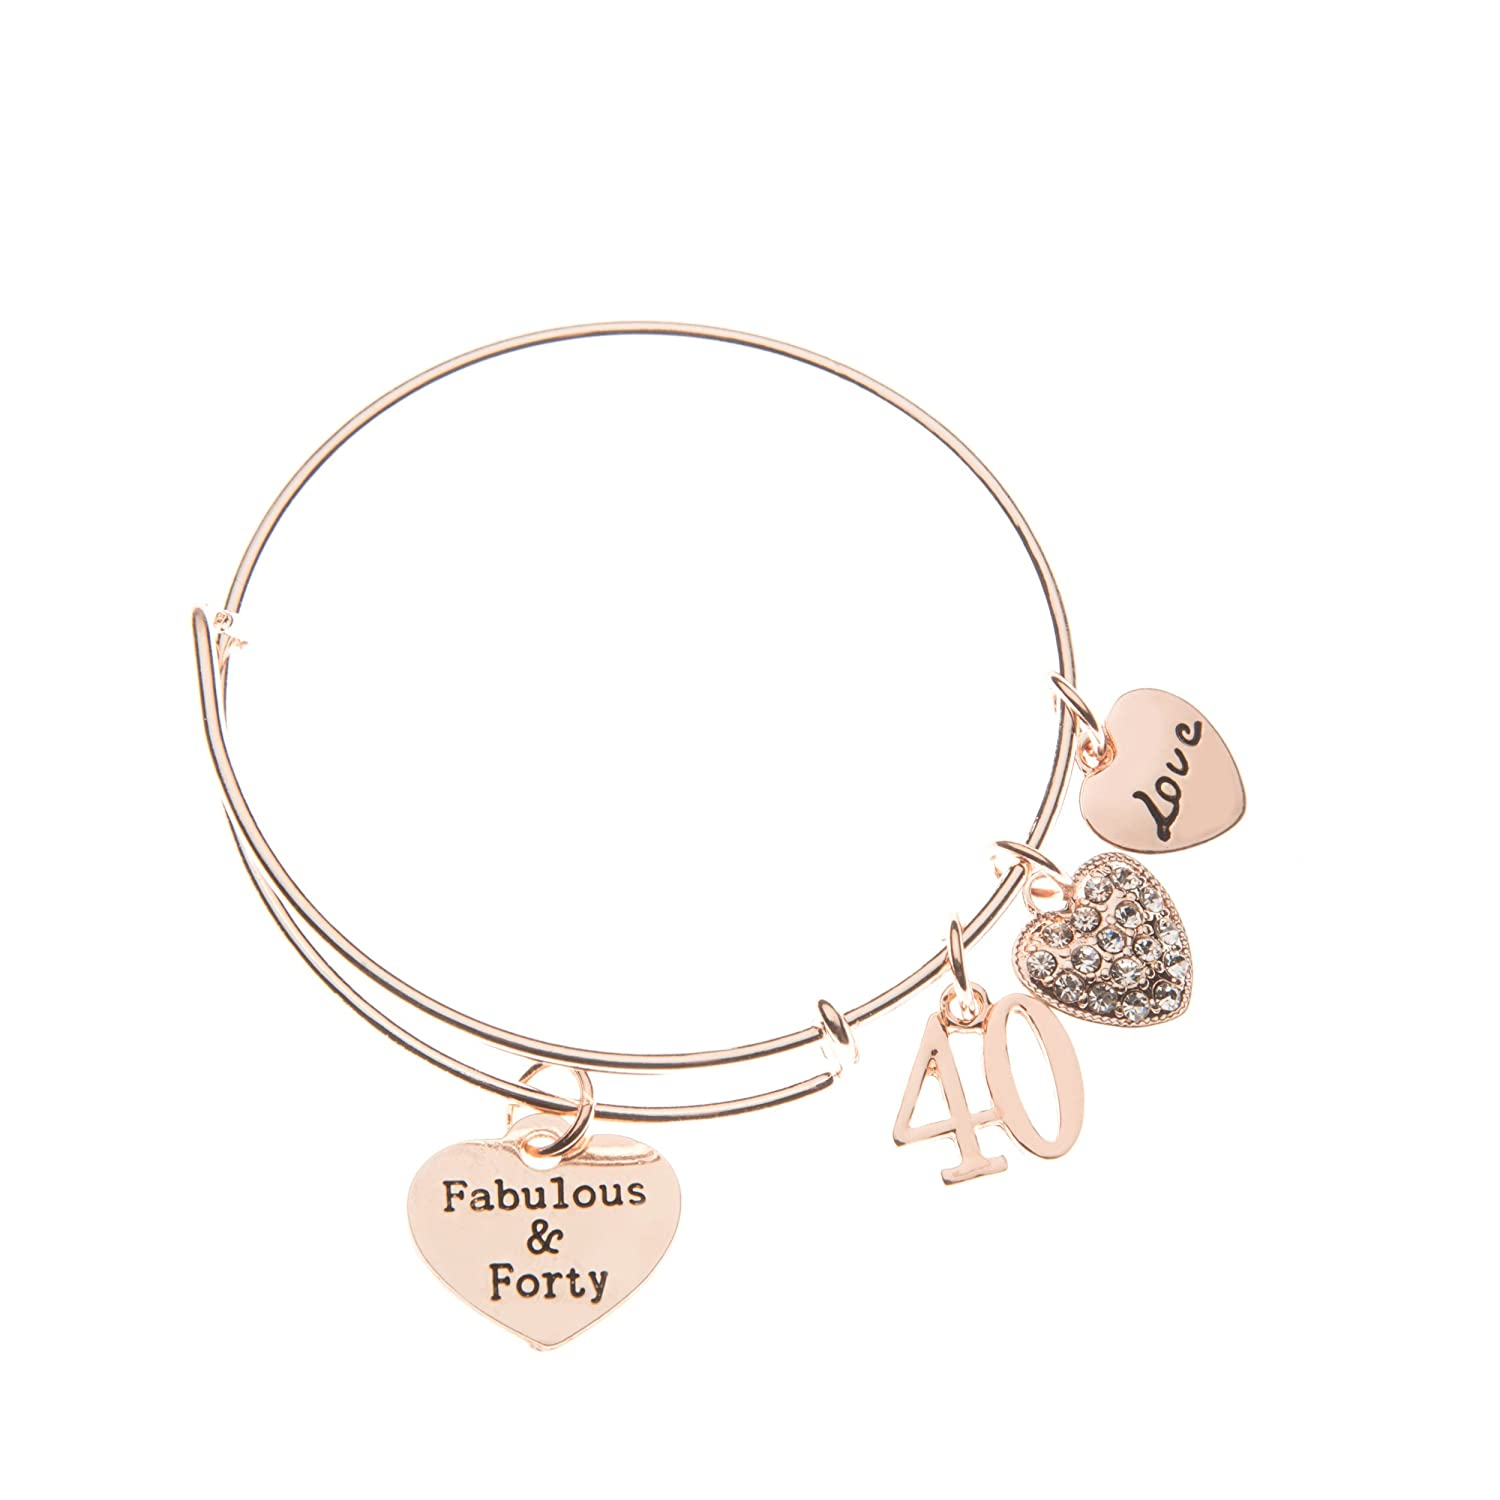 Amazon Infinity Collection 40th Birthday Gifts For Women Rose Gold Expandable Charm Bracelet Ideas Gift Her Jewelry